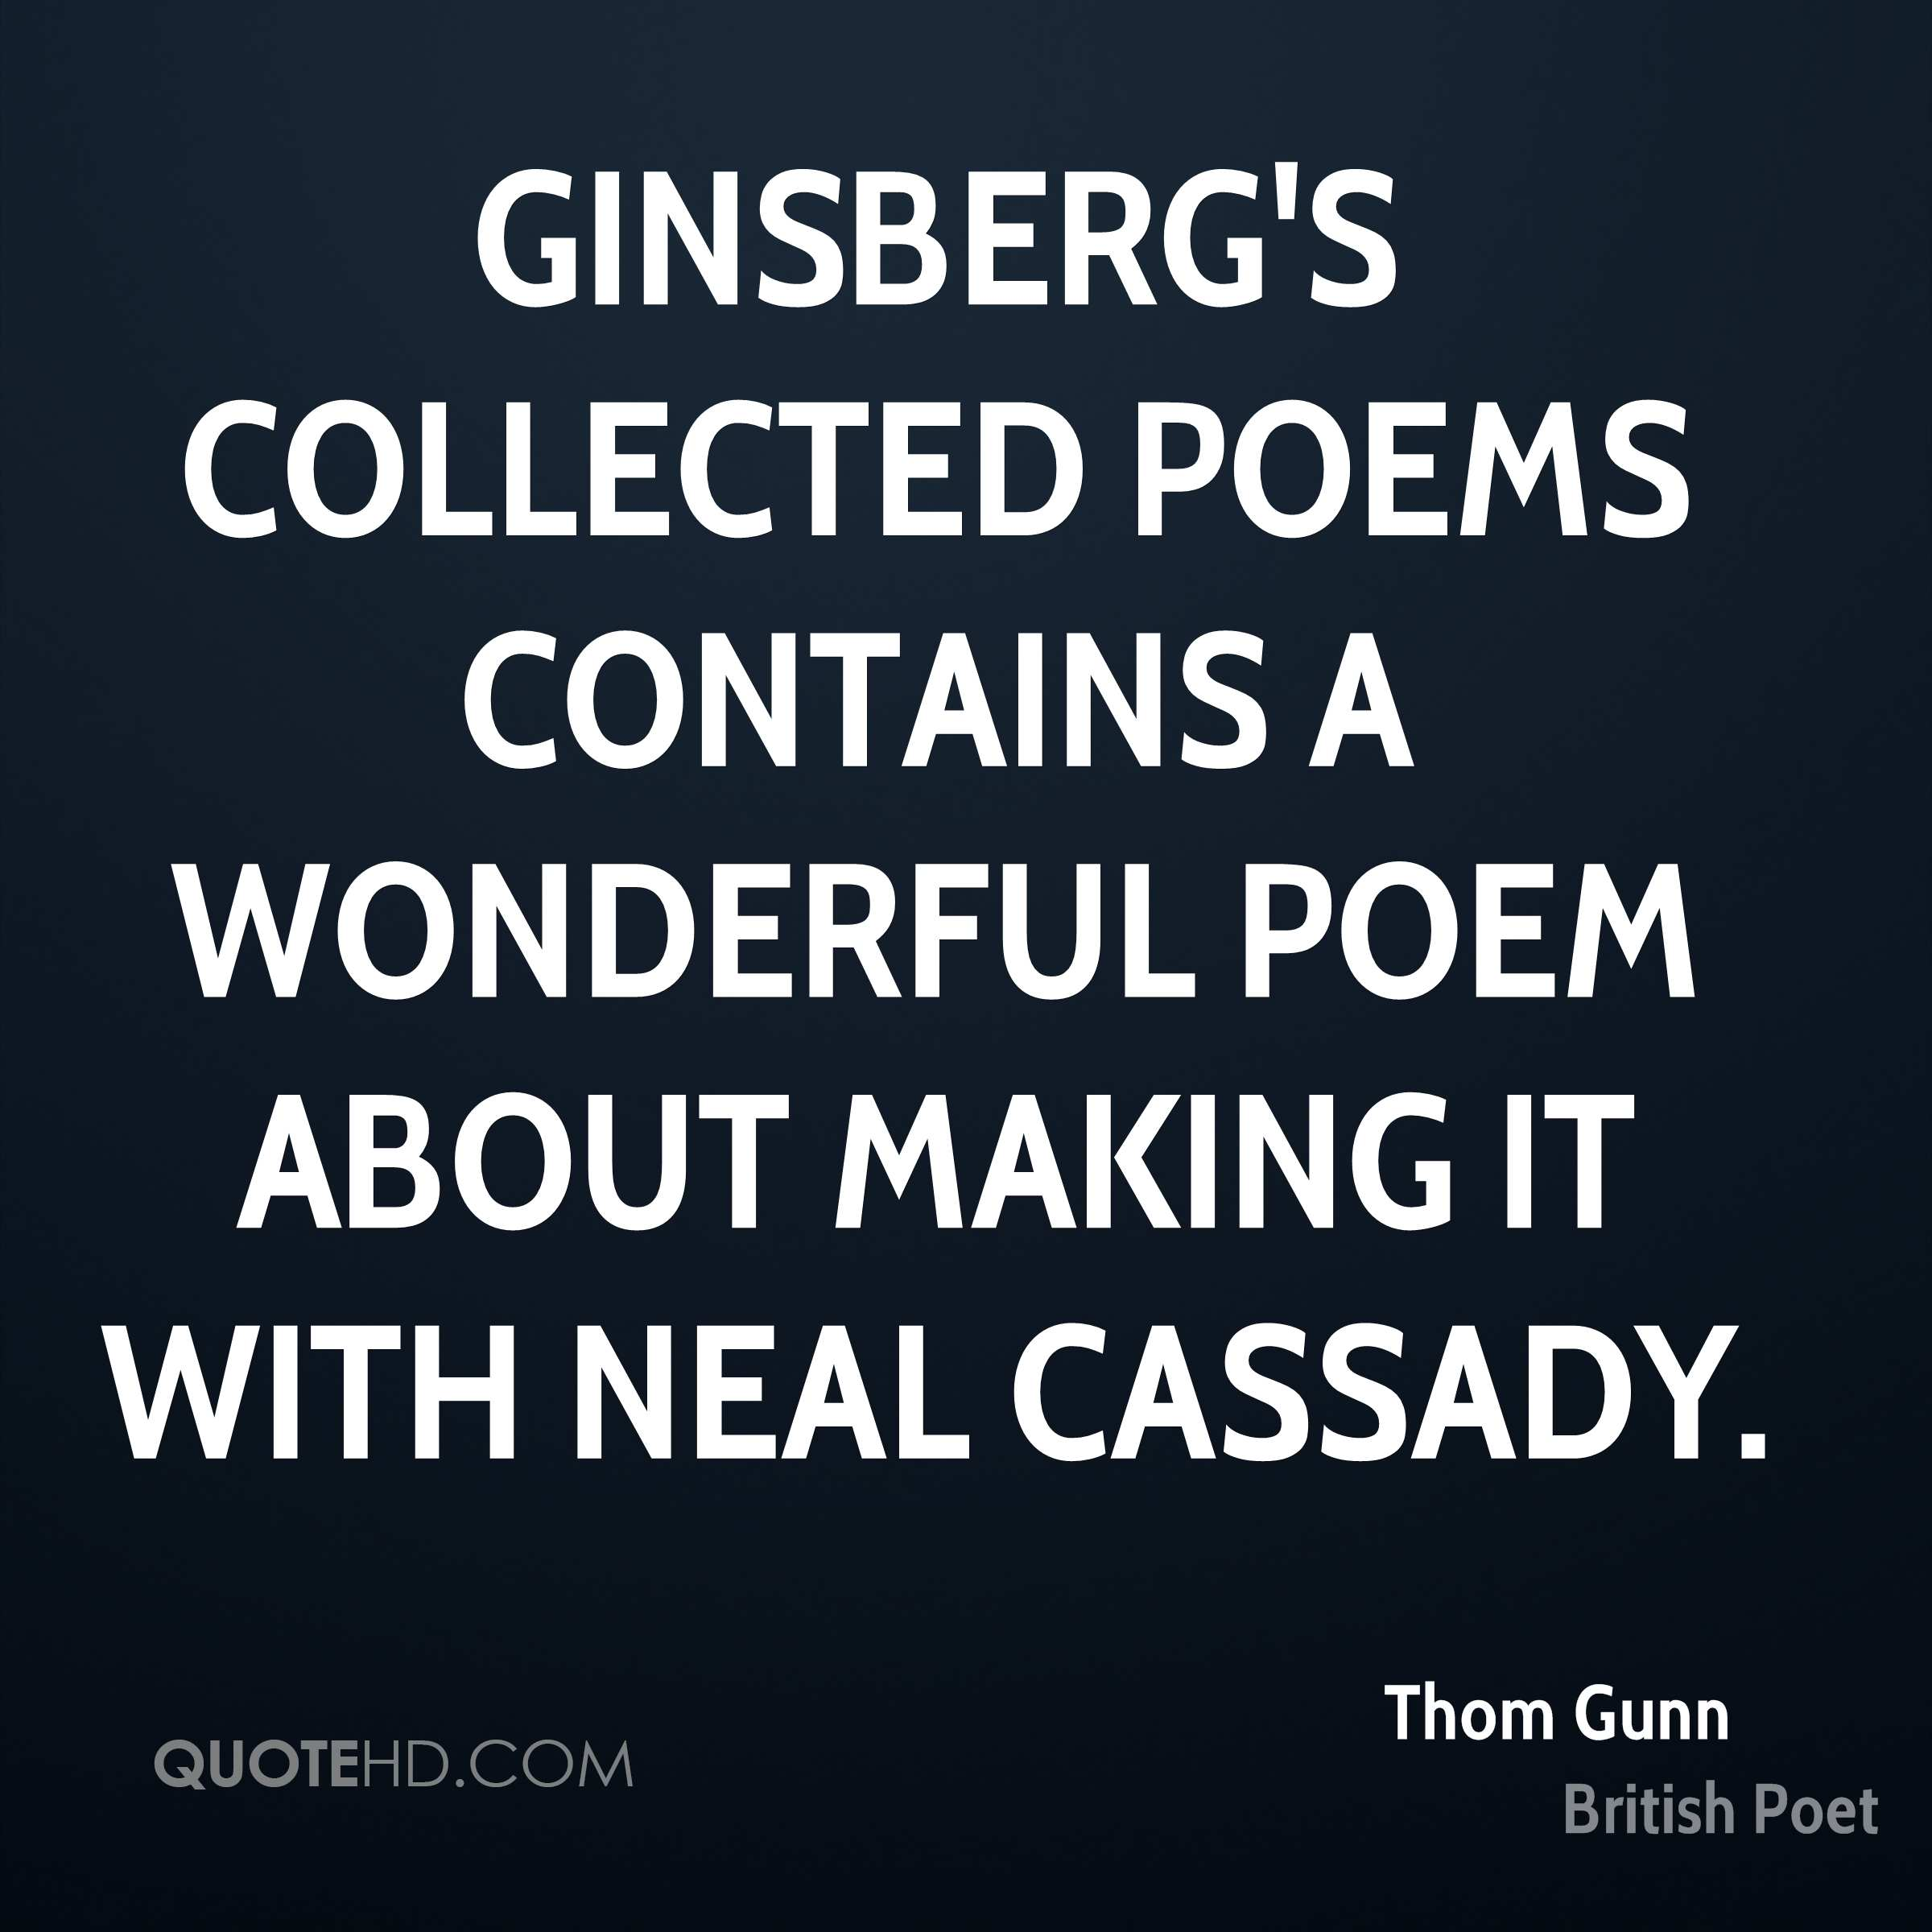 Ginsberg's Collected Poems contains a wonderful poem about making it with Neal Cassady.